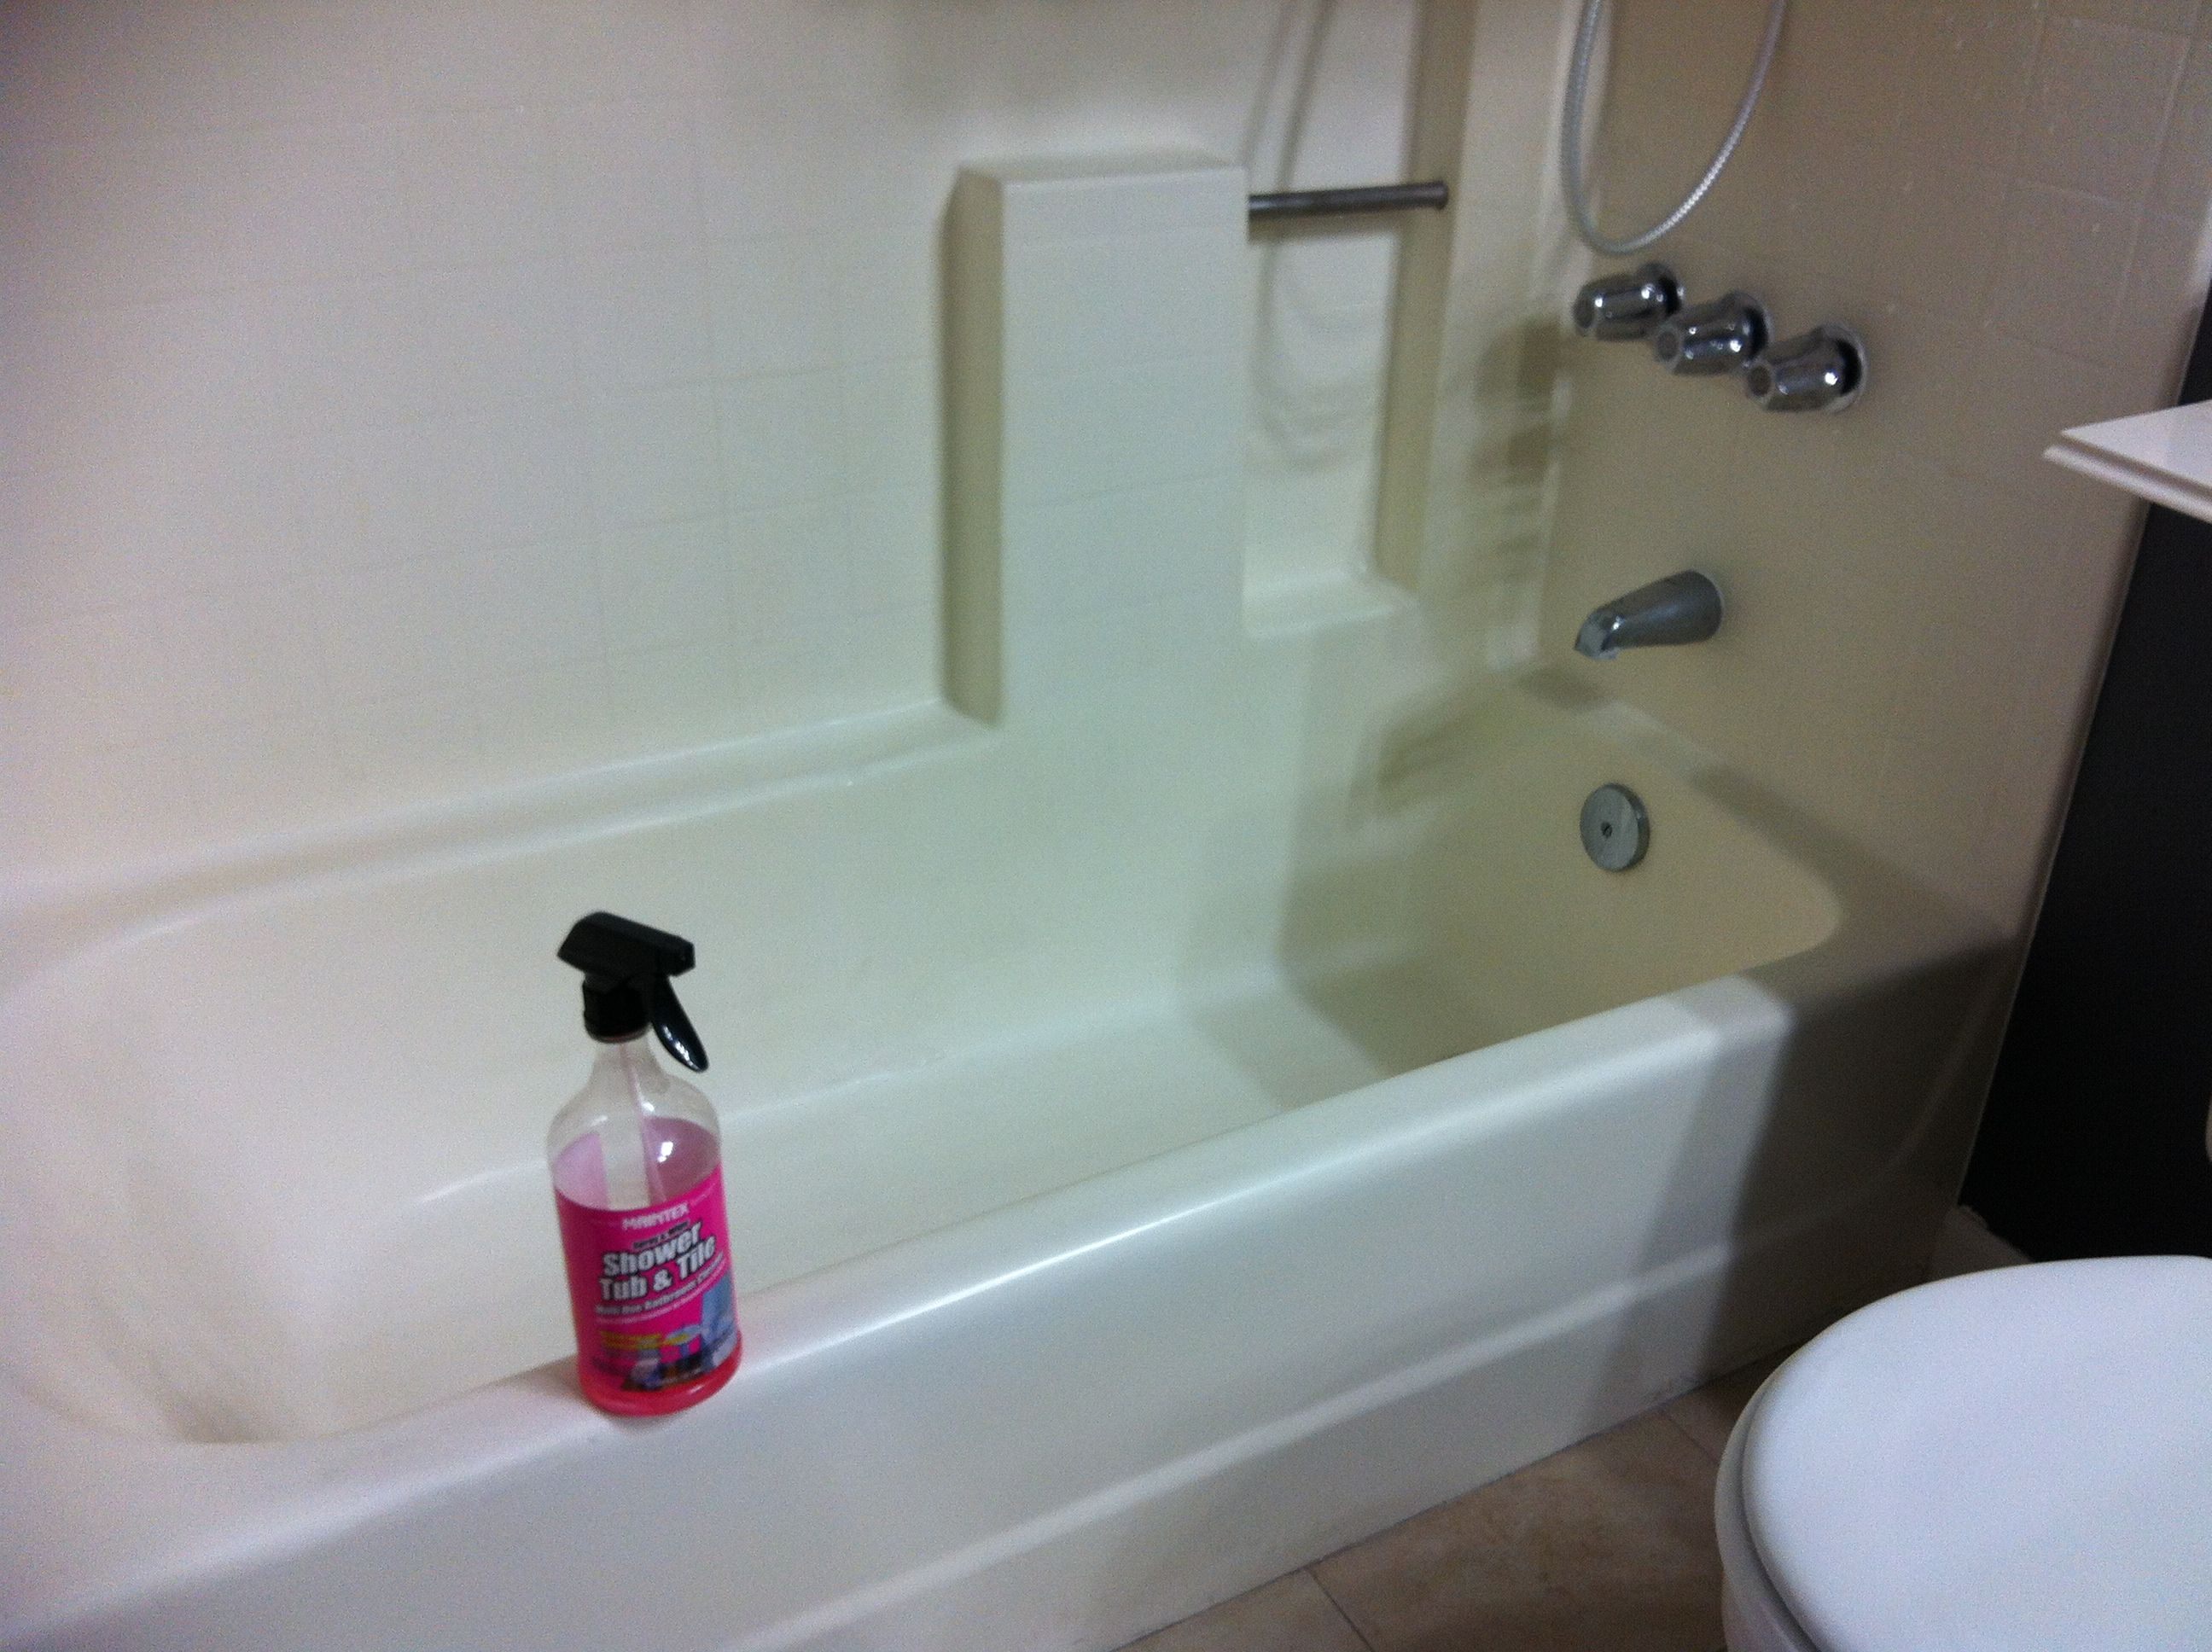 Maintex Spray and Wipe Shower and Tub Tile: Cleans nasty bathroom ...